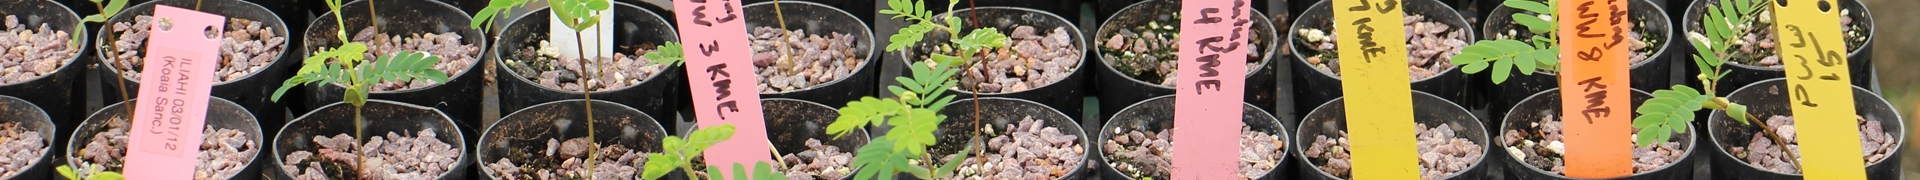 Koa (Acacia koa) seedlings from different environments being raised for an experiment.